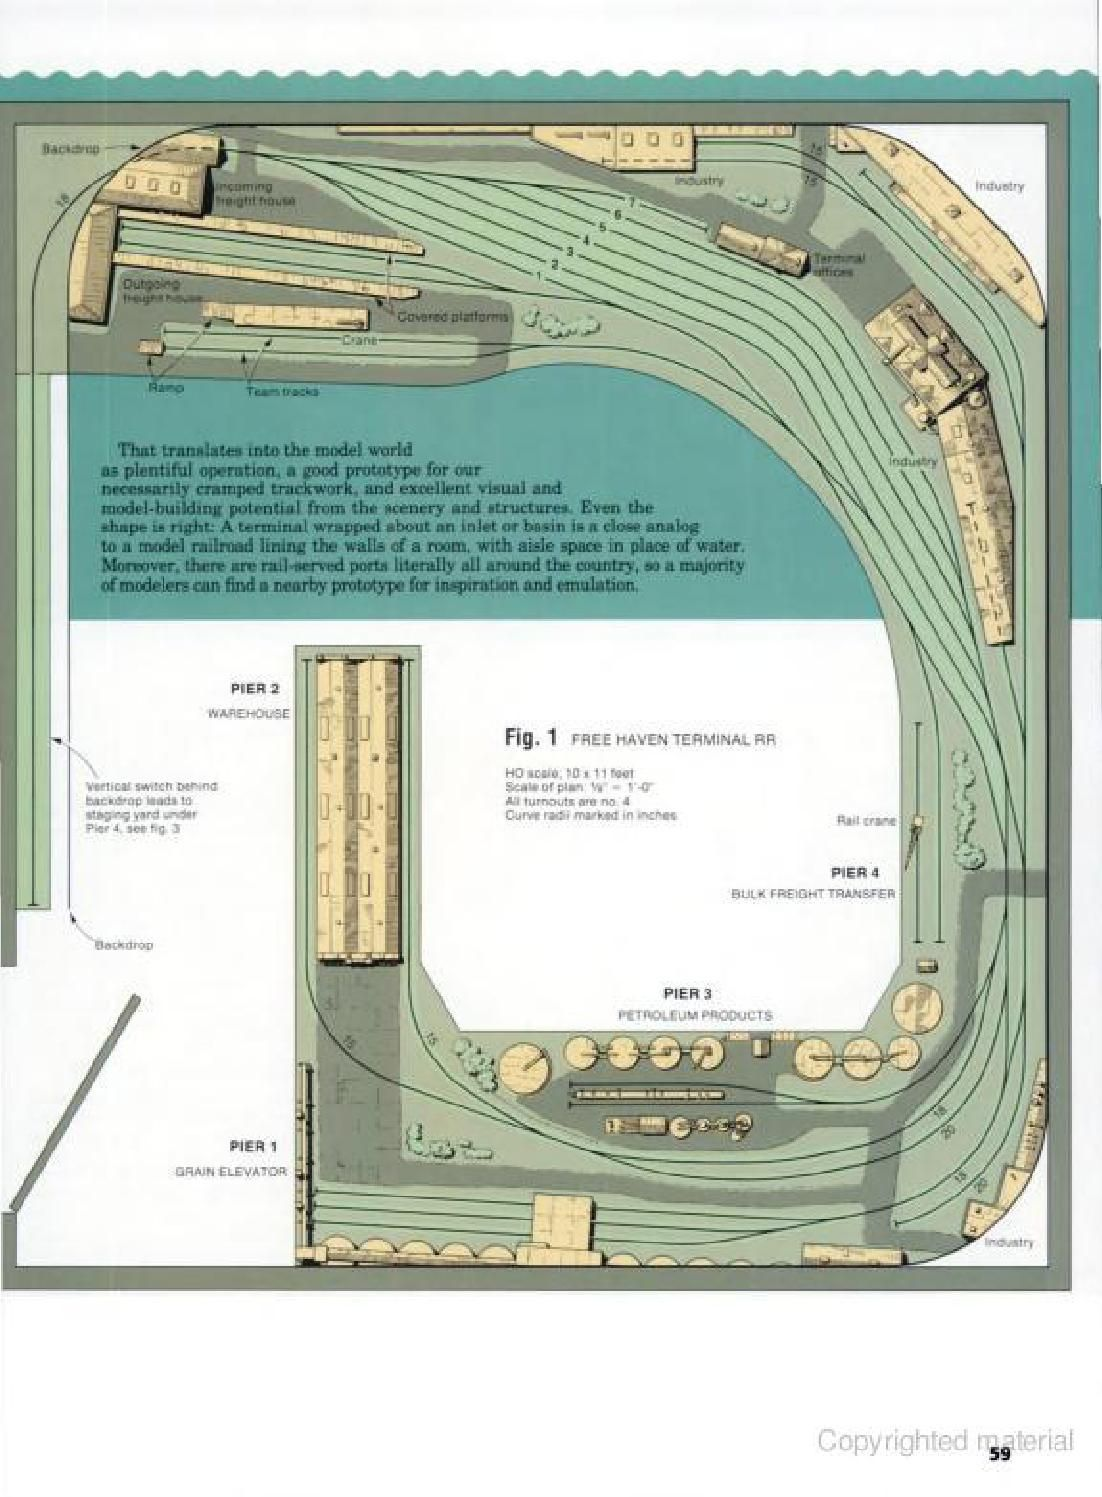 48 Top-Notch Track Plans   Model railway track plans, Model ... on water warehouse, maize inside warehouse, residential warehouse, shopper s warehouse, amazon warehouse, graffiti warehouse, coker cotton warehouse, sports warehouse, holiday warehouse, projecting windows in warehouse,